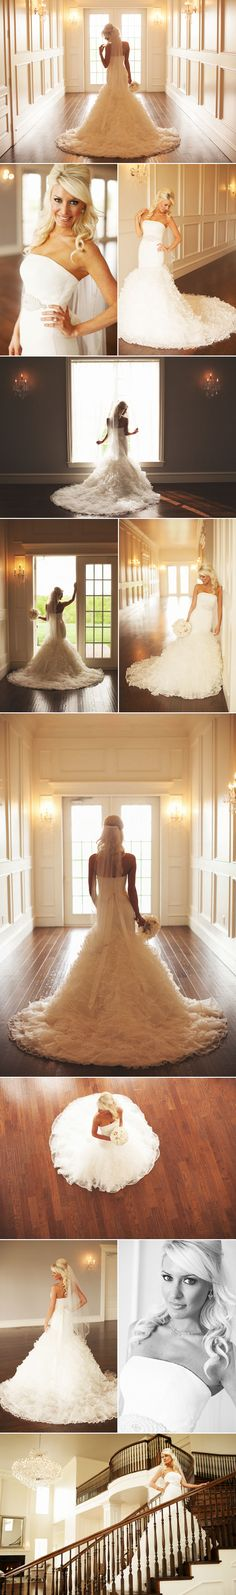 That dress! And the pictures are also stunning!